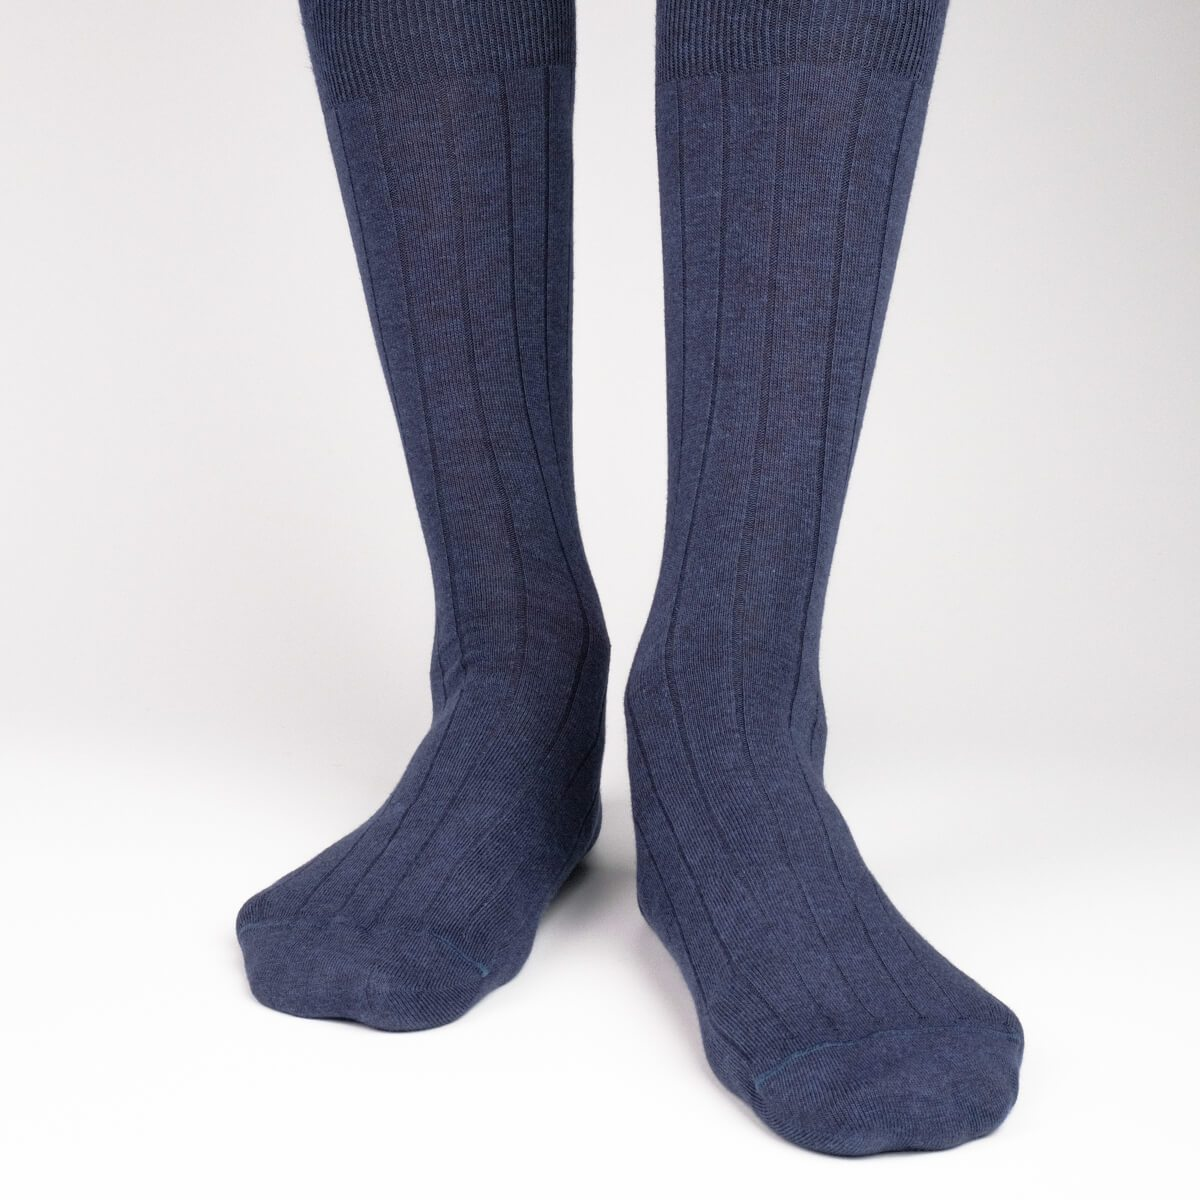 The Classic Rib - Dark Blue - Mens Socks | Etiquette Clothiers Global Official